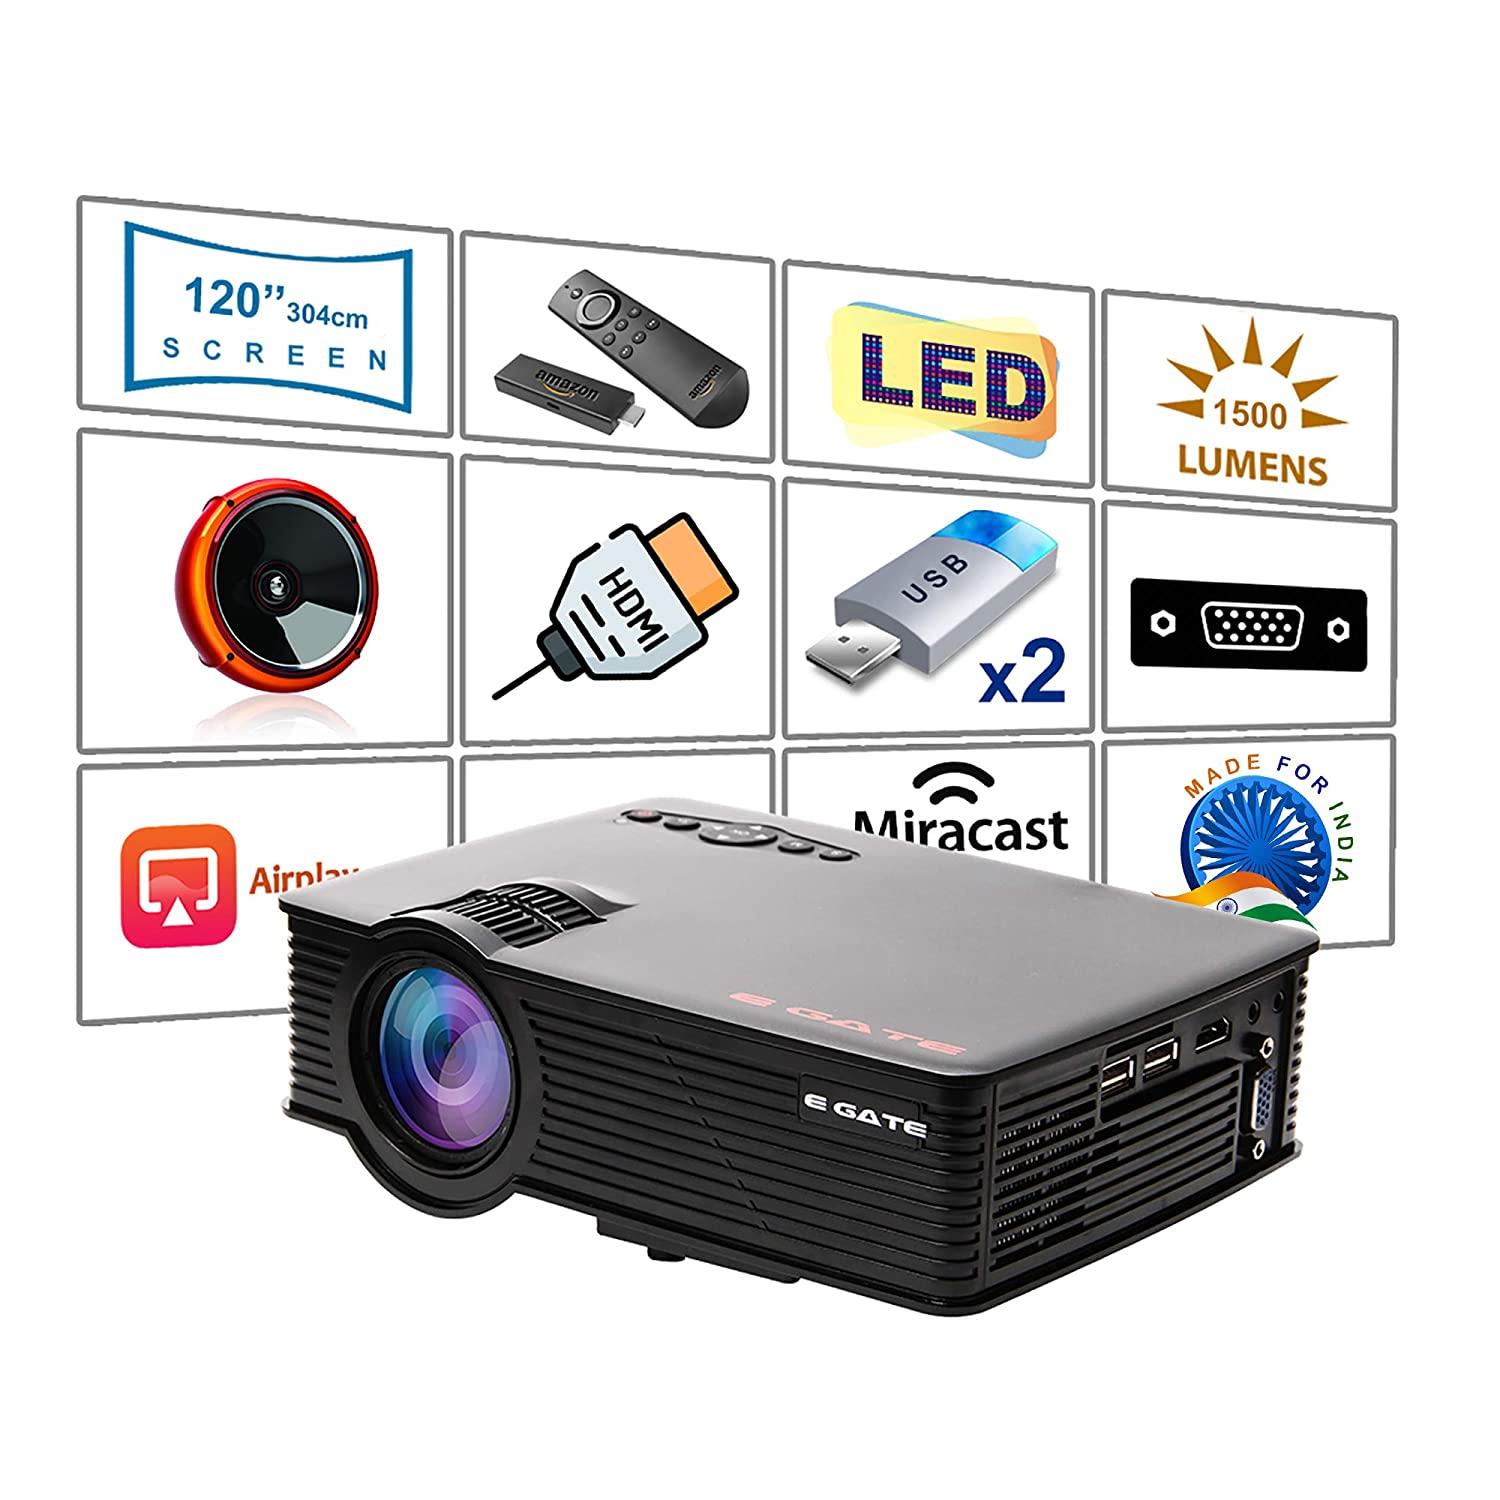 Egate i9 LED HD Projector review